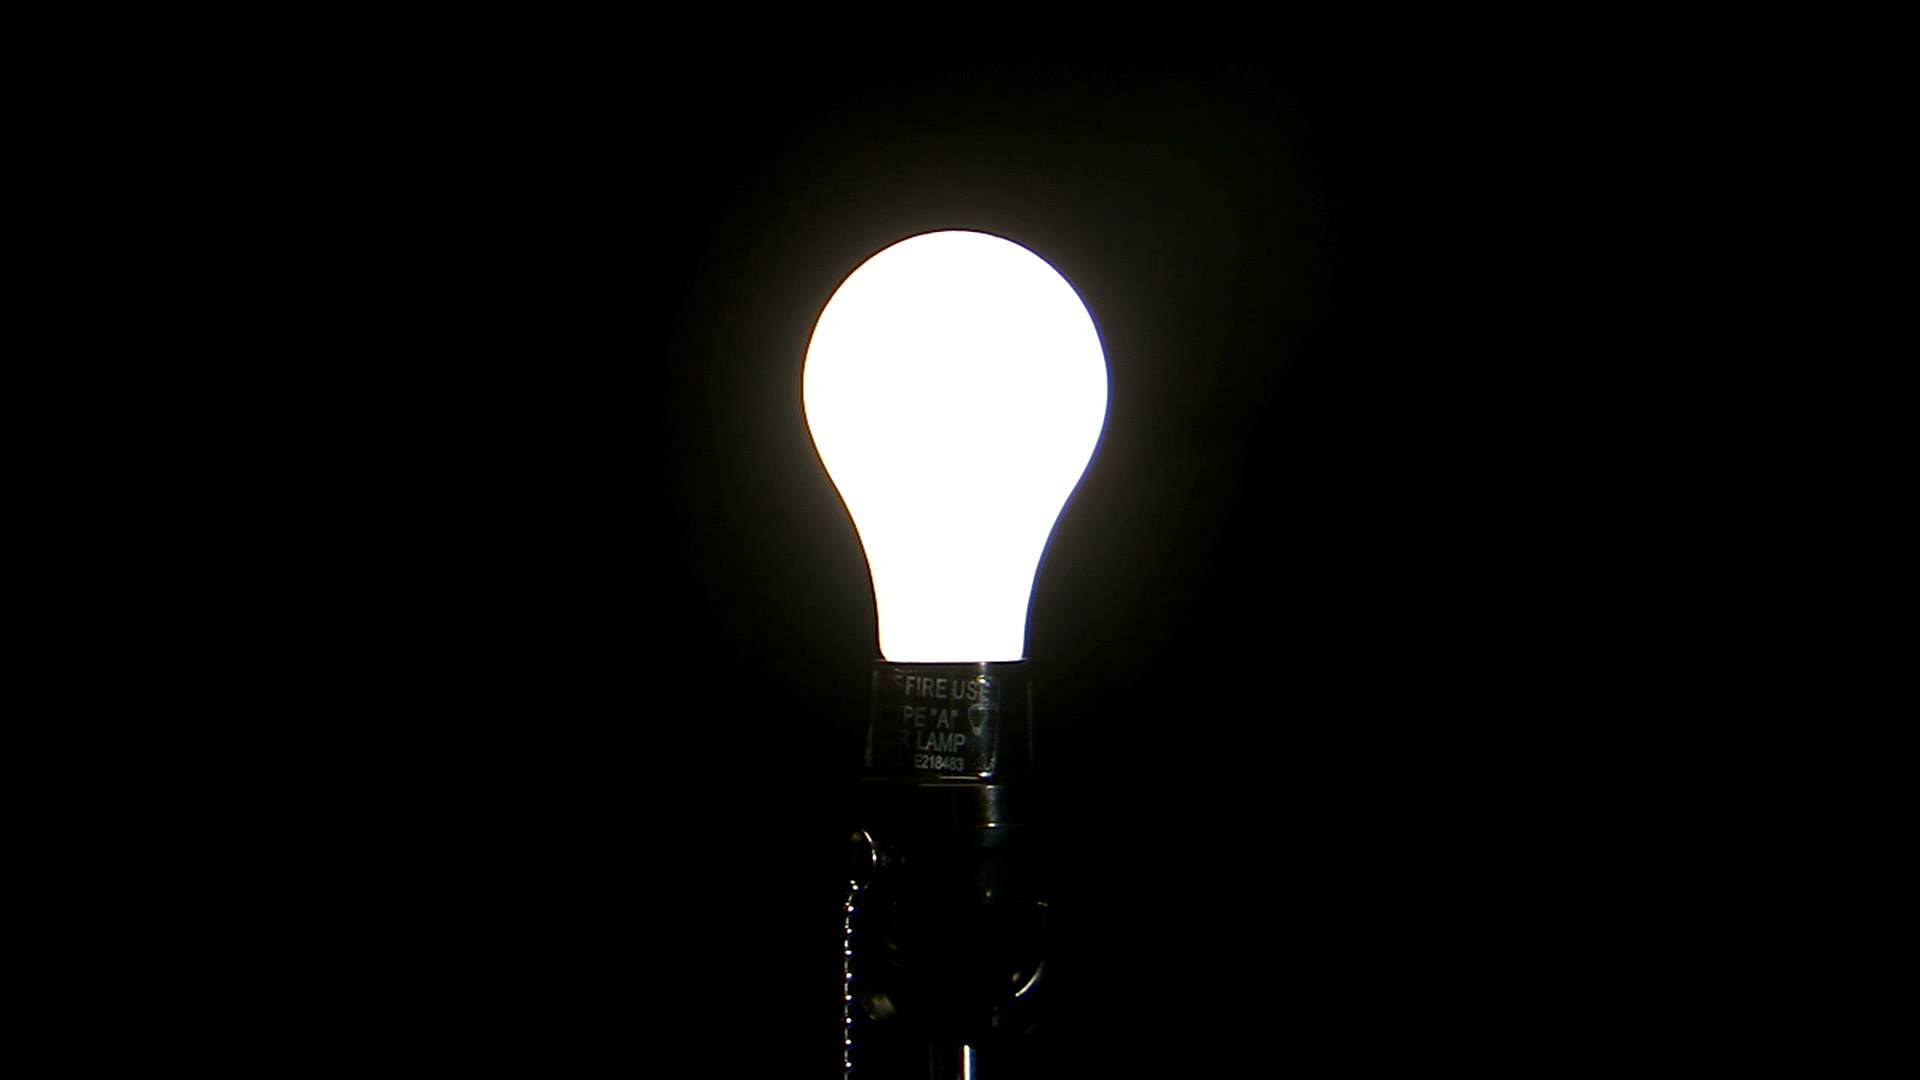 Light Bulb Turning on Against a Black Background, HD Stock Footage.